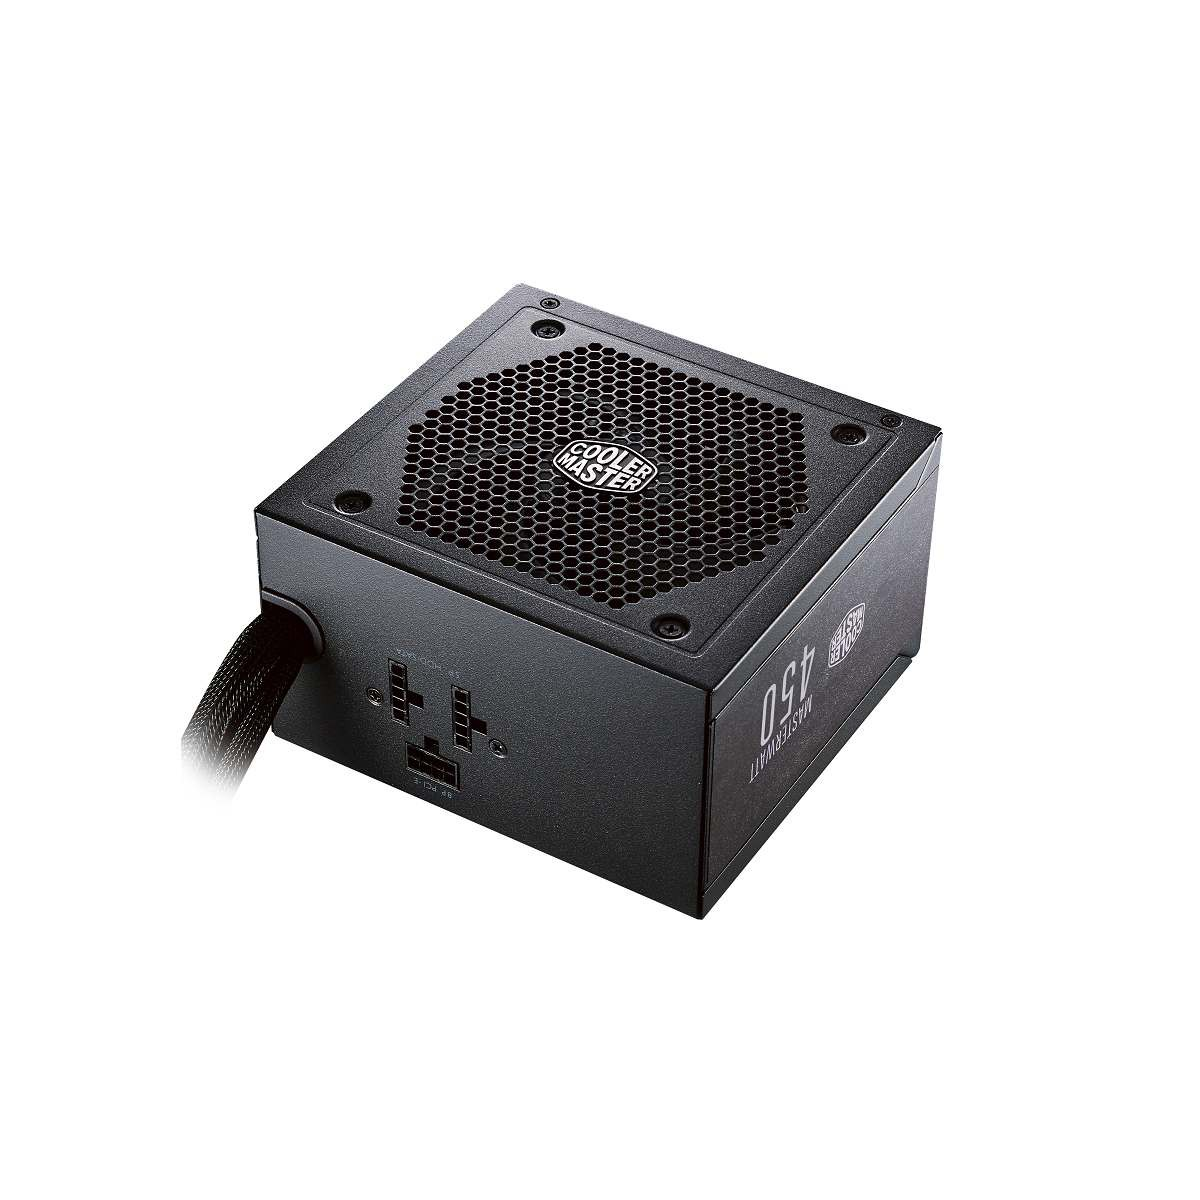 Блок питания 450W Cooler Master MasterWatt 450 (MPX-4501-AMAAB-EU) (120мм, 24+8pin, 2x6/8pin, 2xMolex, 6xSata, 80 Plus Bronze)